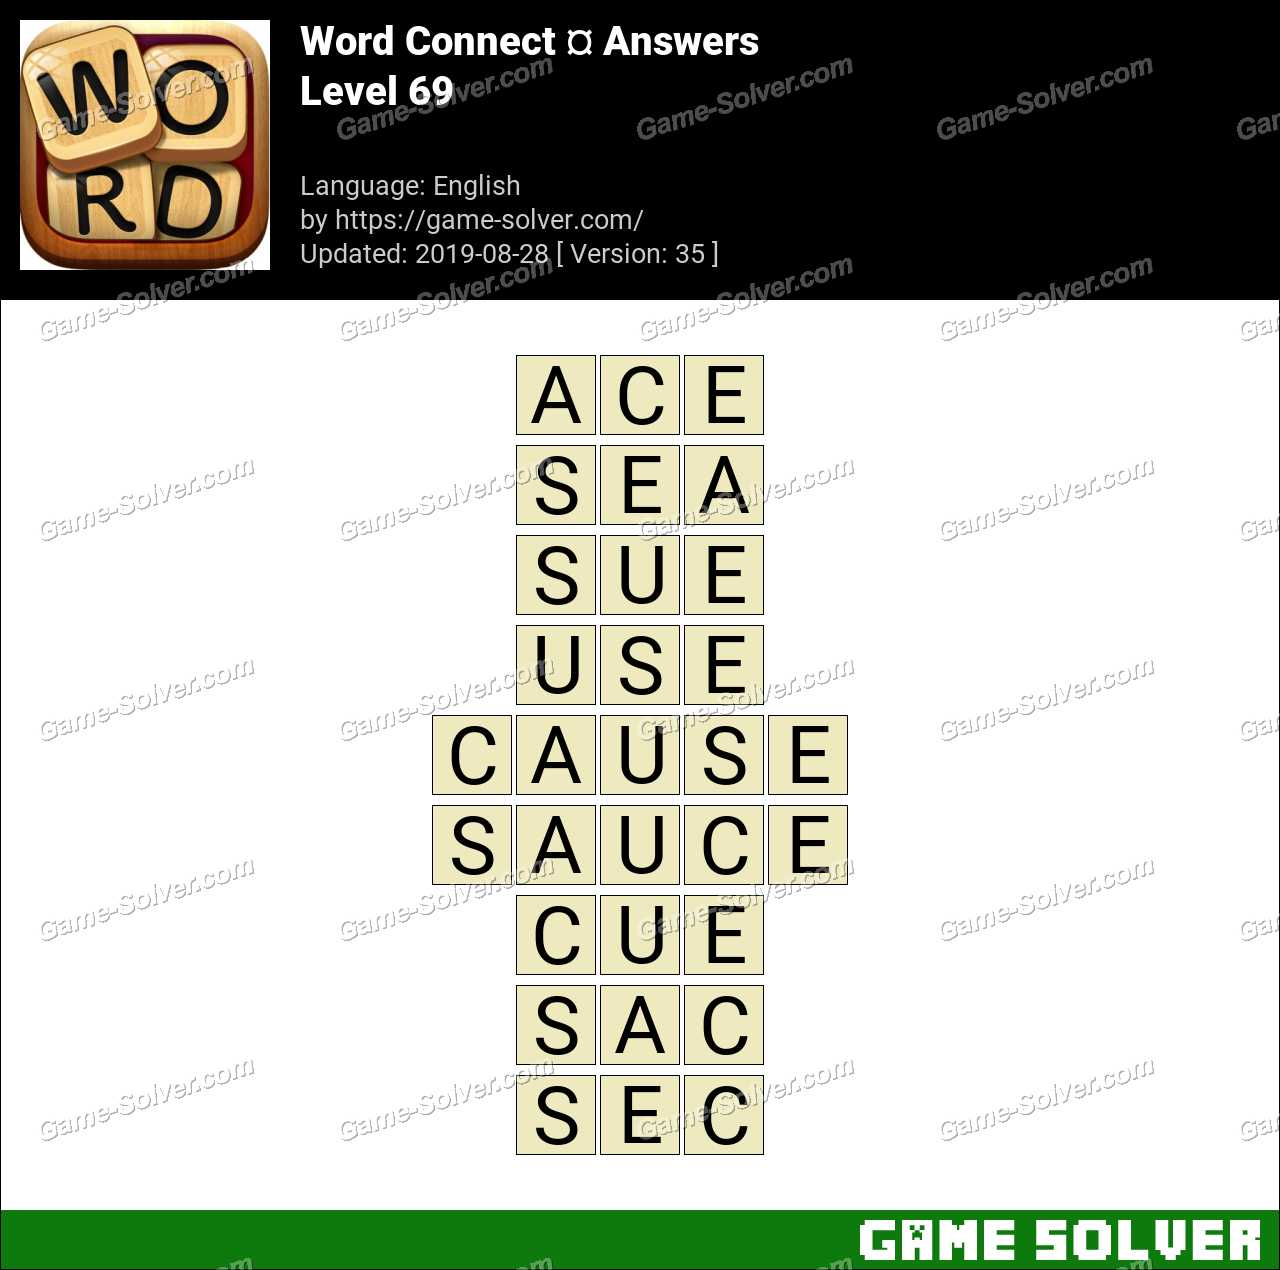 Word Connect Level 69 Answers